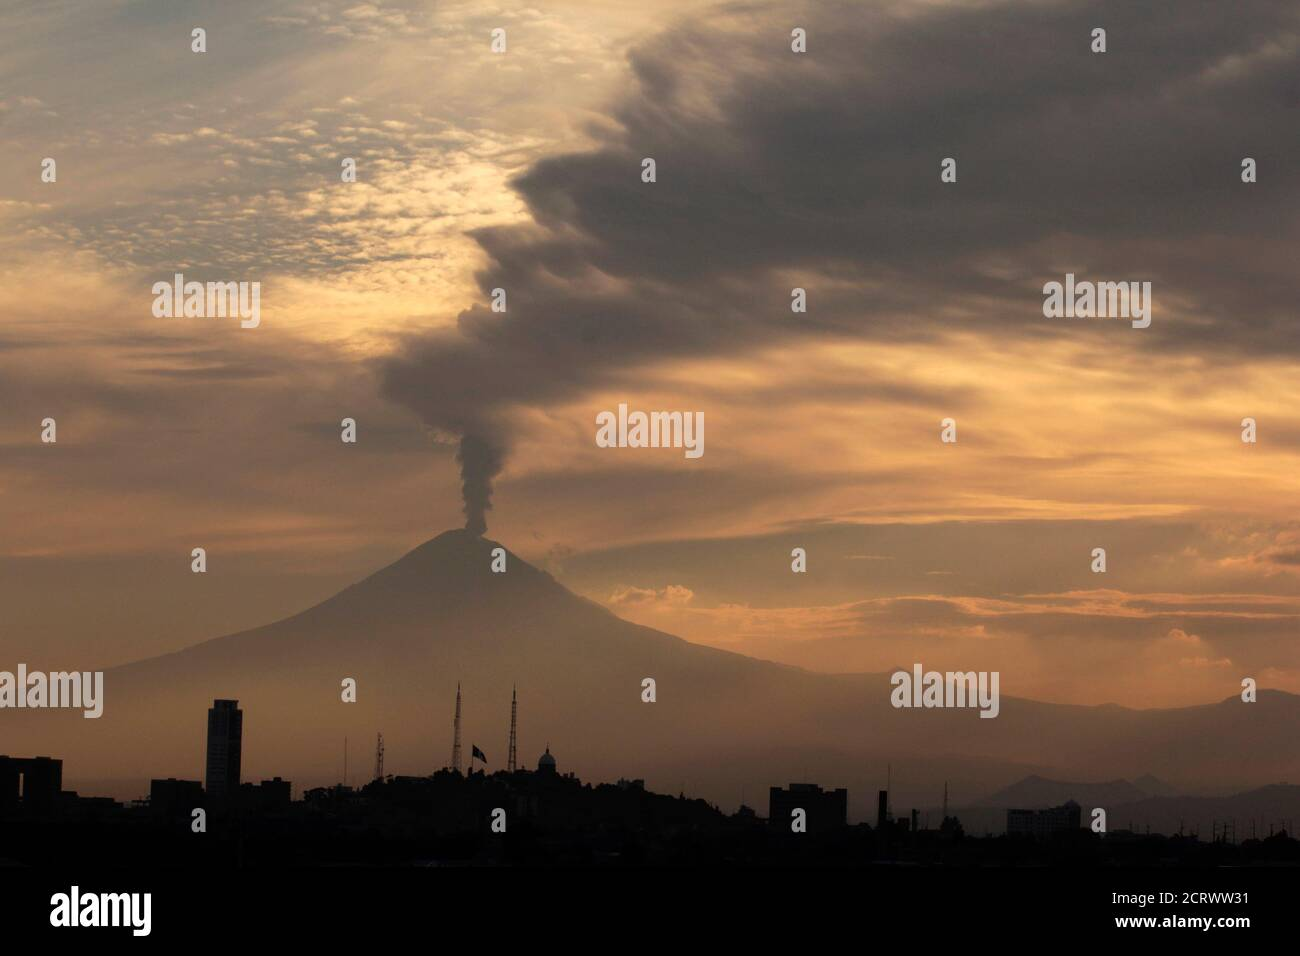 The Popocatepetl volcano spews a cloud of ash and steam high into the air in Puebla May 11, 2012.  Mexico last month raised the alert level for the volcano Popocatepetl, 50 miles (80 km) southeast of Mexico City, after it began pumping out red-hot fragments of rock and ash. The country has been closely monitoring the 17,900-foot (5,450-metre) volcano, which has prompted school classes in nearby villages to be suspended on days of higher activity. REUTERS/Imelda Medina (MEXICO - Tags: ENVIRONMENT) Foto de stock